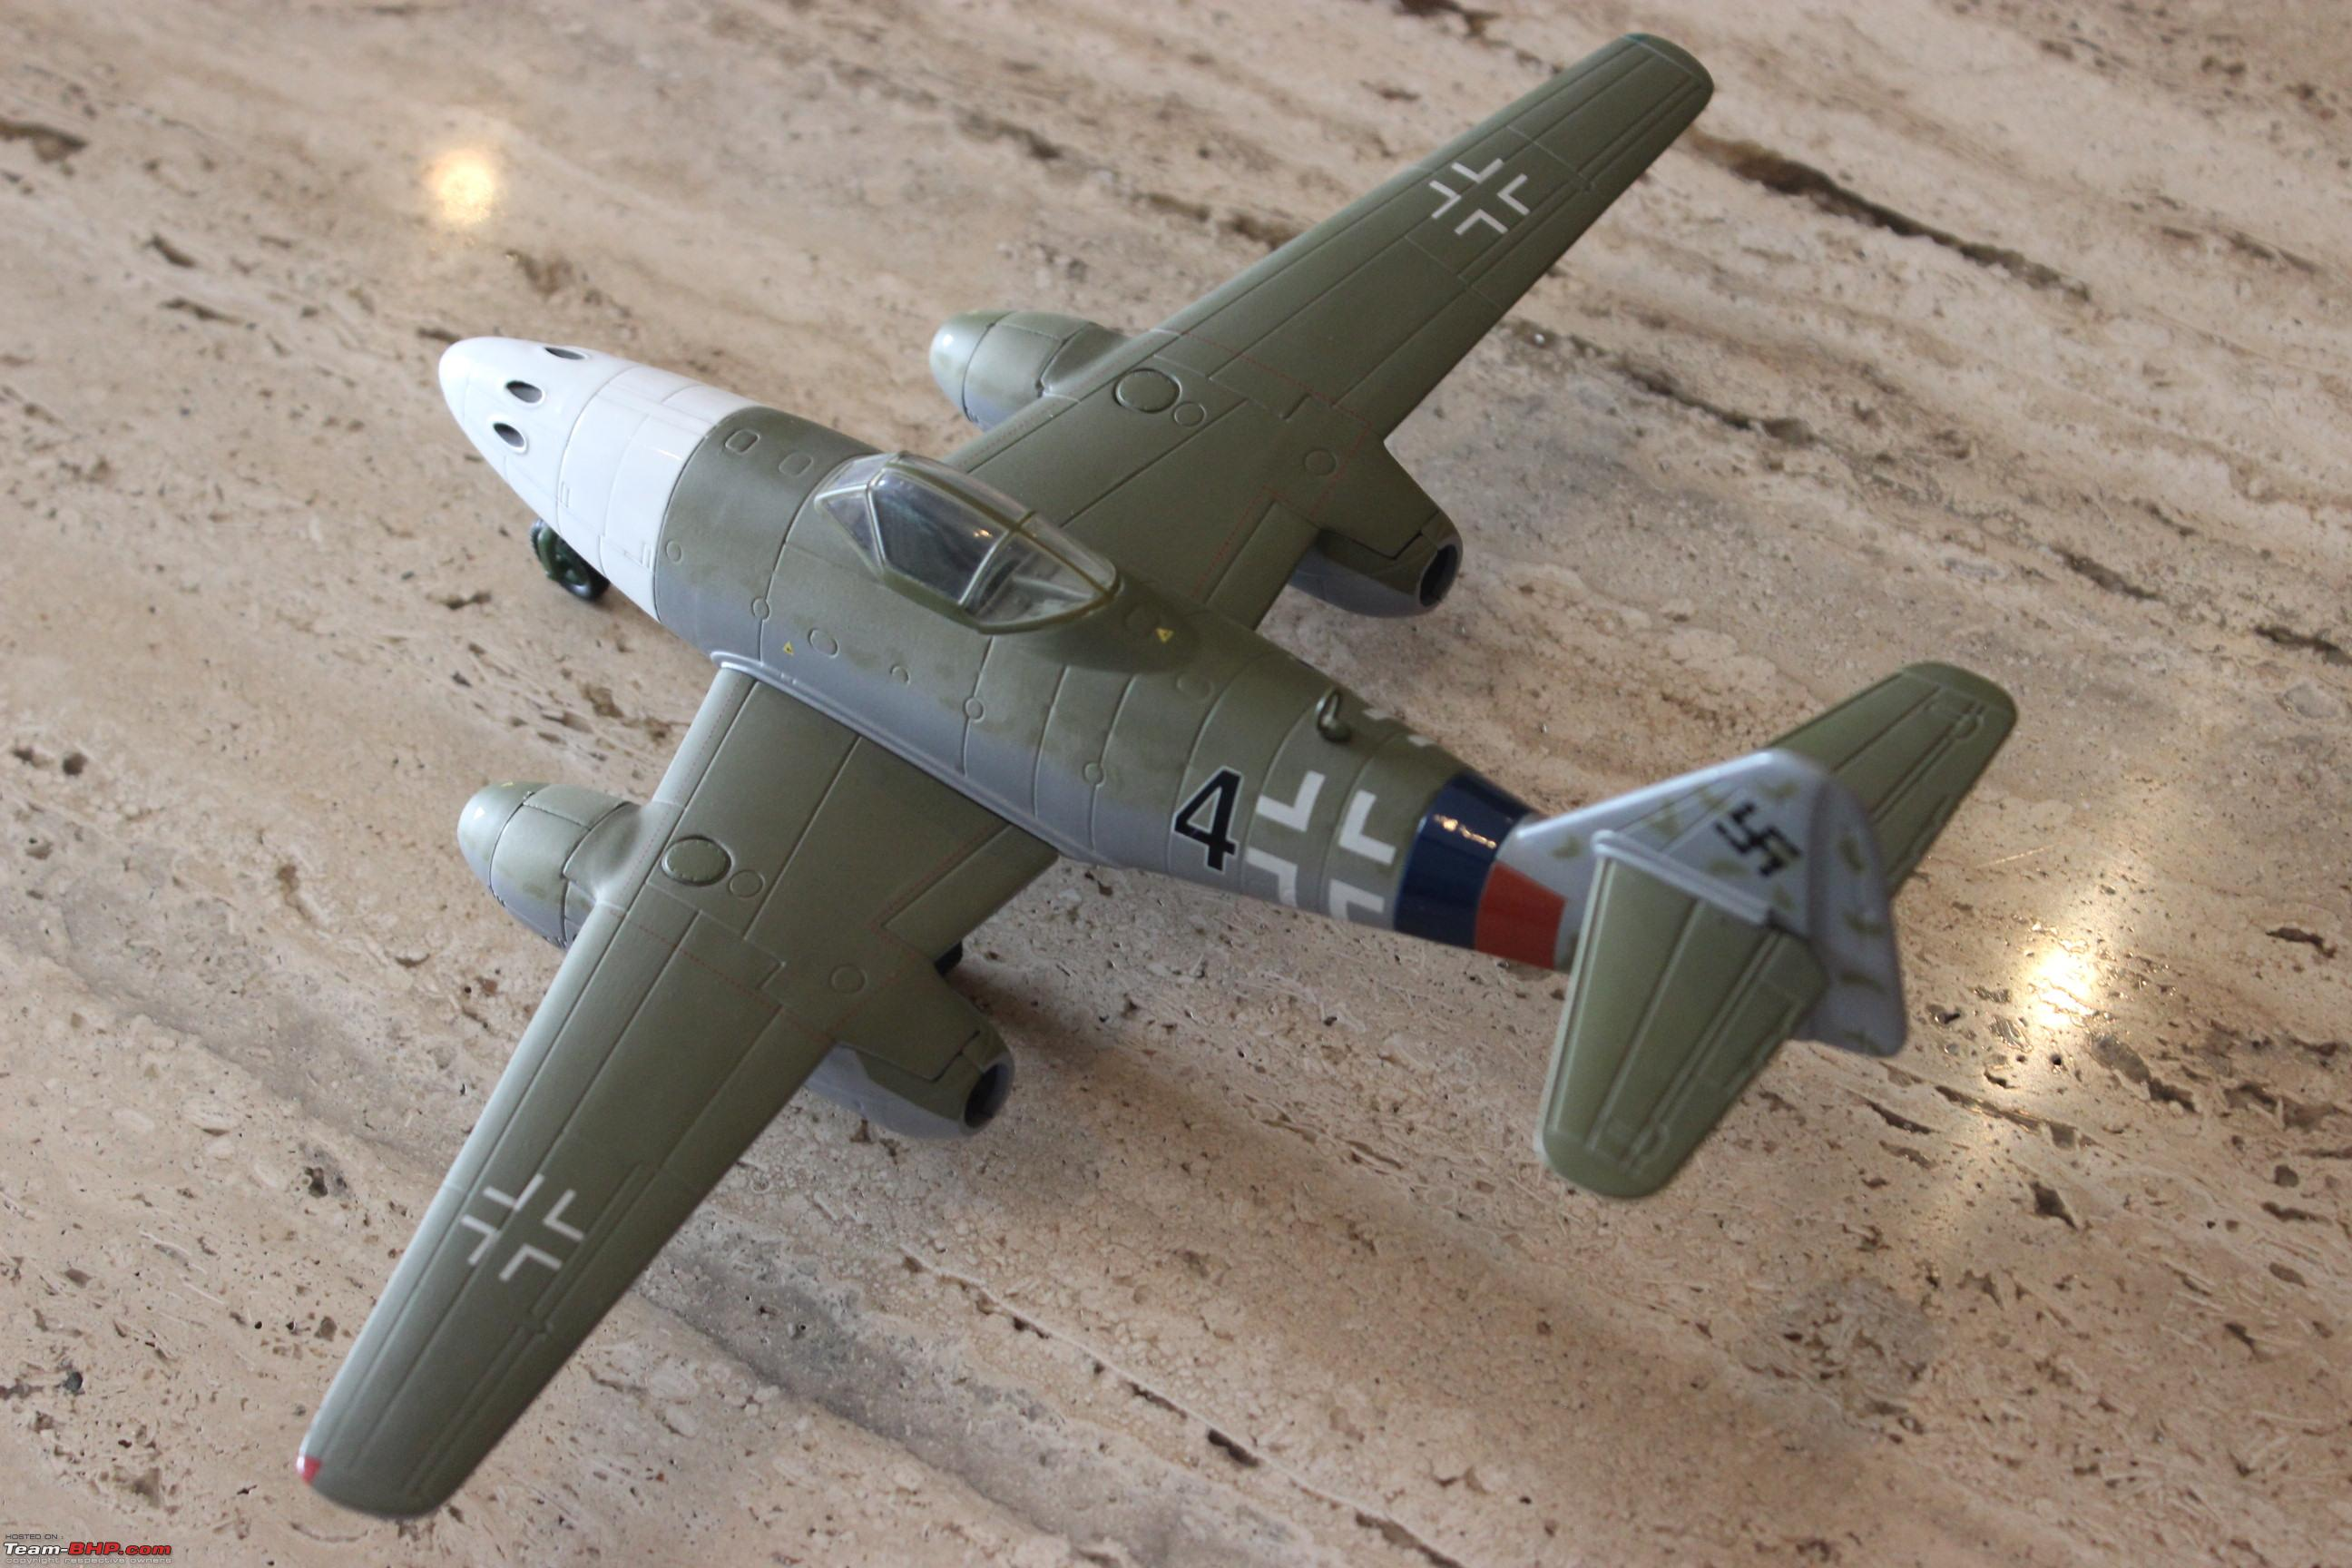 Scale Models - Aircrafts & Ships - Team-BHP